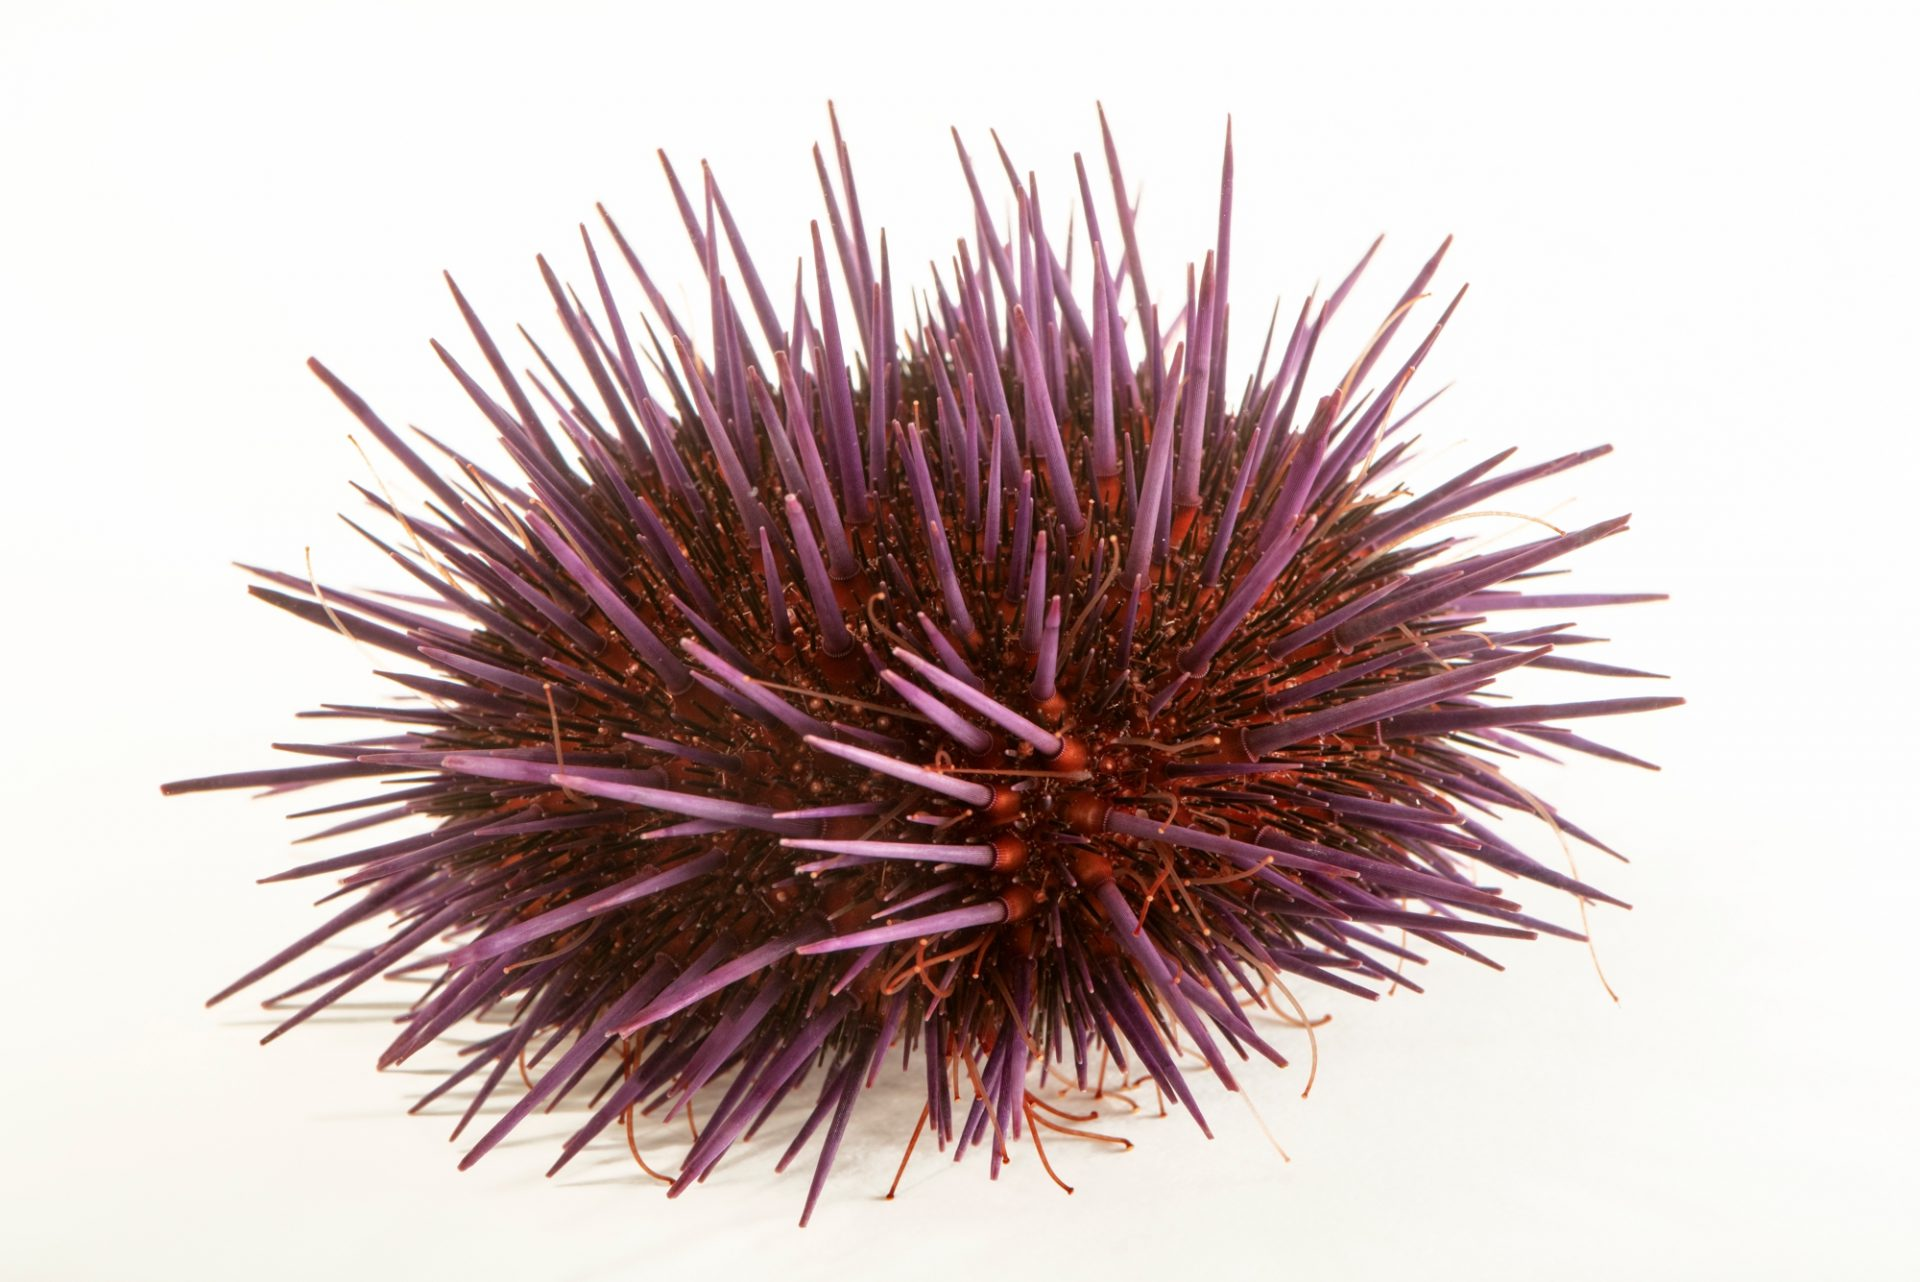 Photo: Common Sea Urchin (Heliocidaris erythrogramma) at Melbourne Zoo.